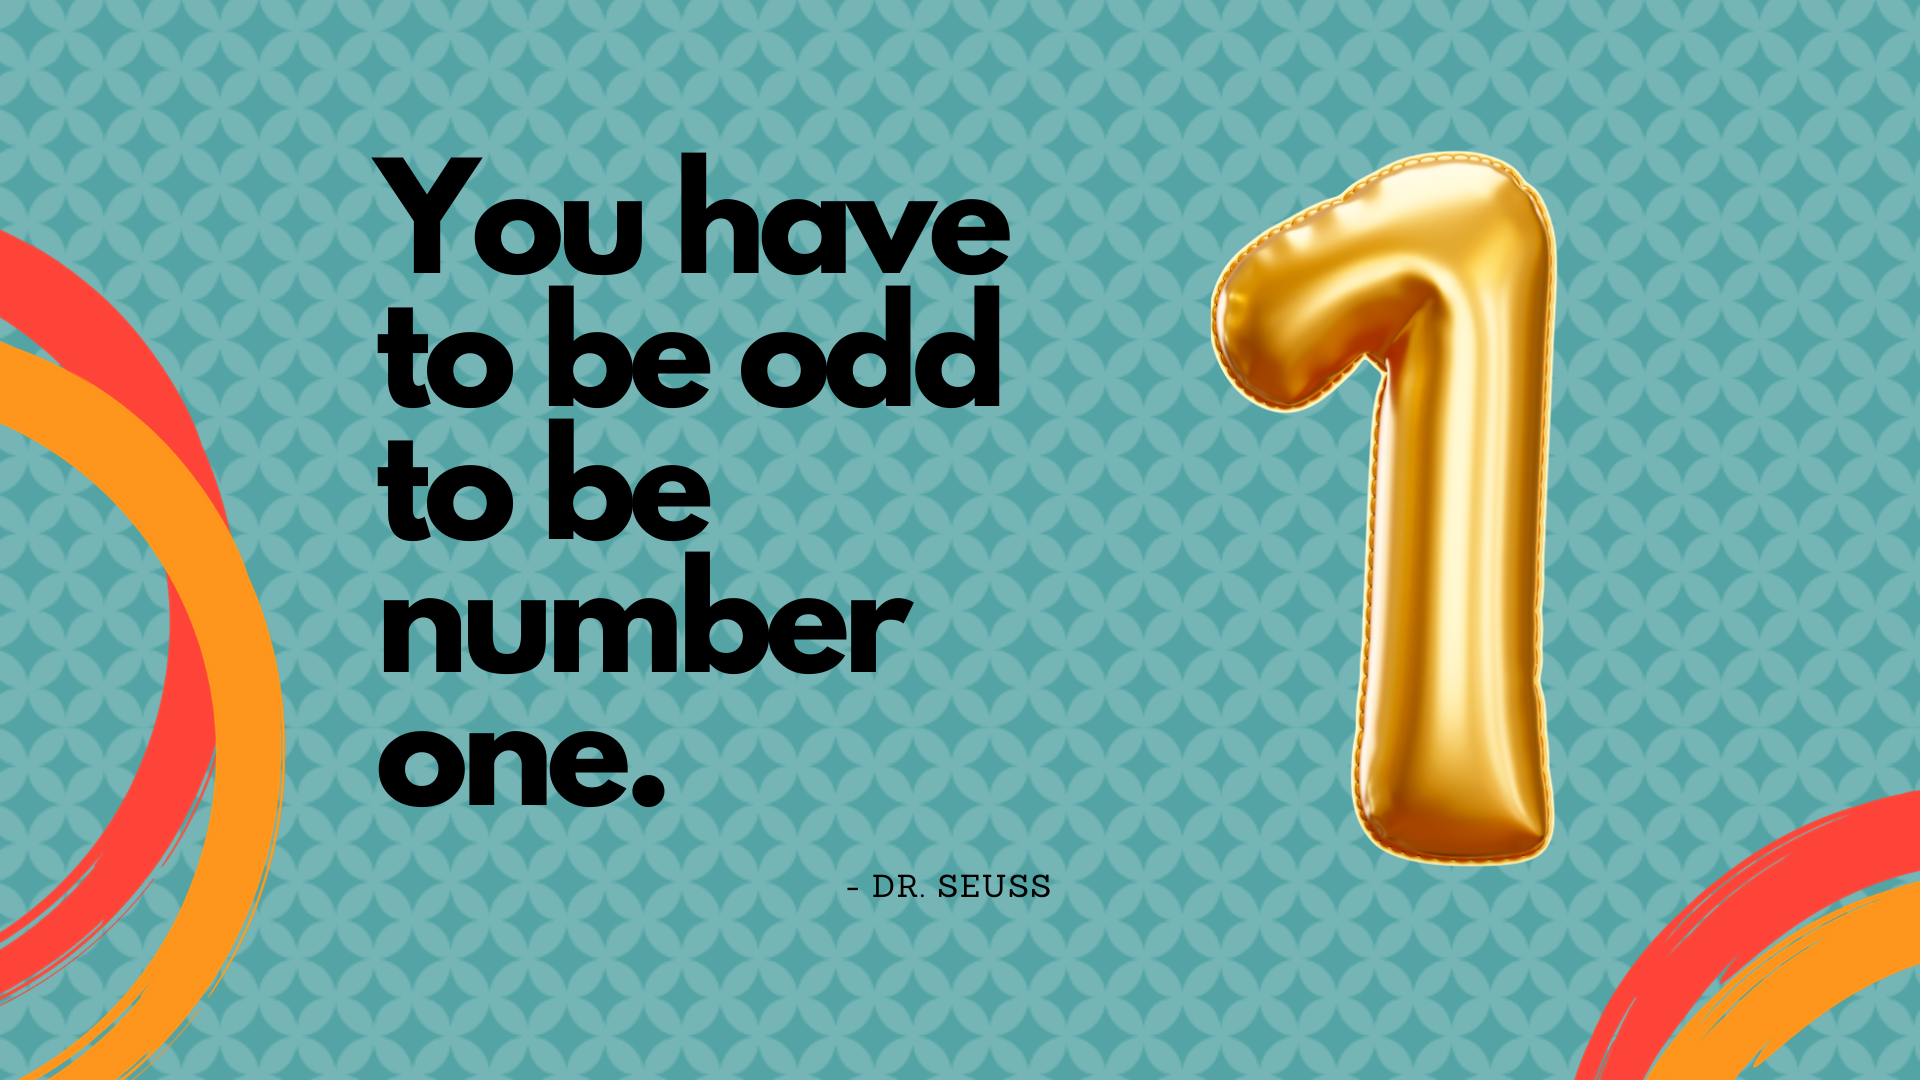 You have to be odd to be number one. – Dr. Seuss[1920×1080]